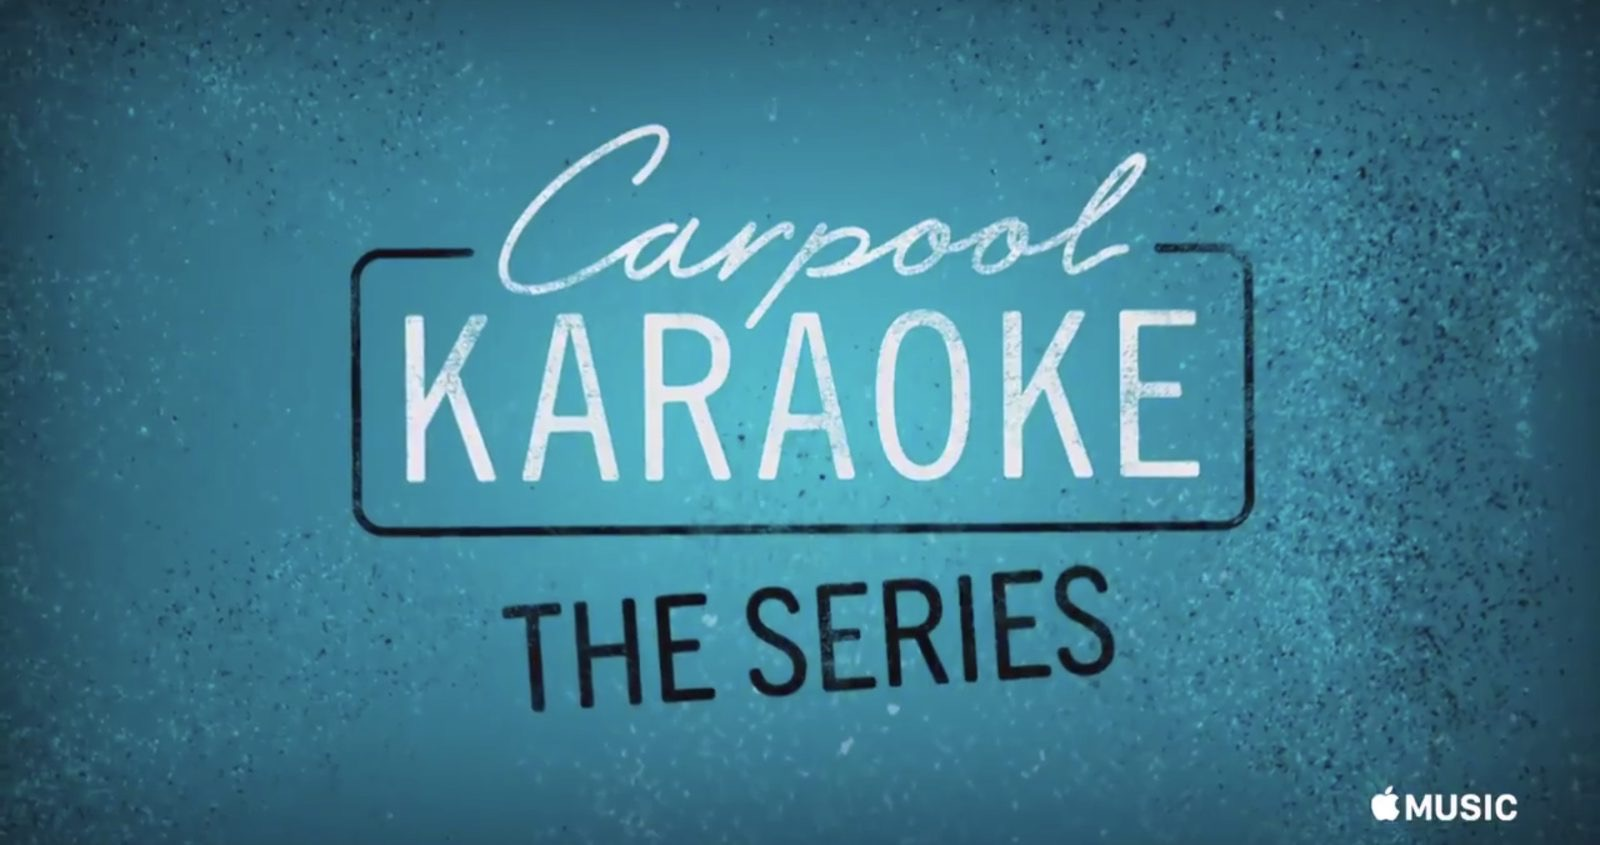 'Carpool Karaoke: The Series' is Coming Soon to Apple Music 16304b07 2d78 40dc 963c 2b6993885604 352 00000020260870da tmp